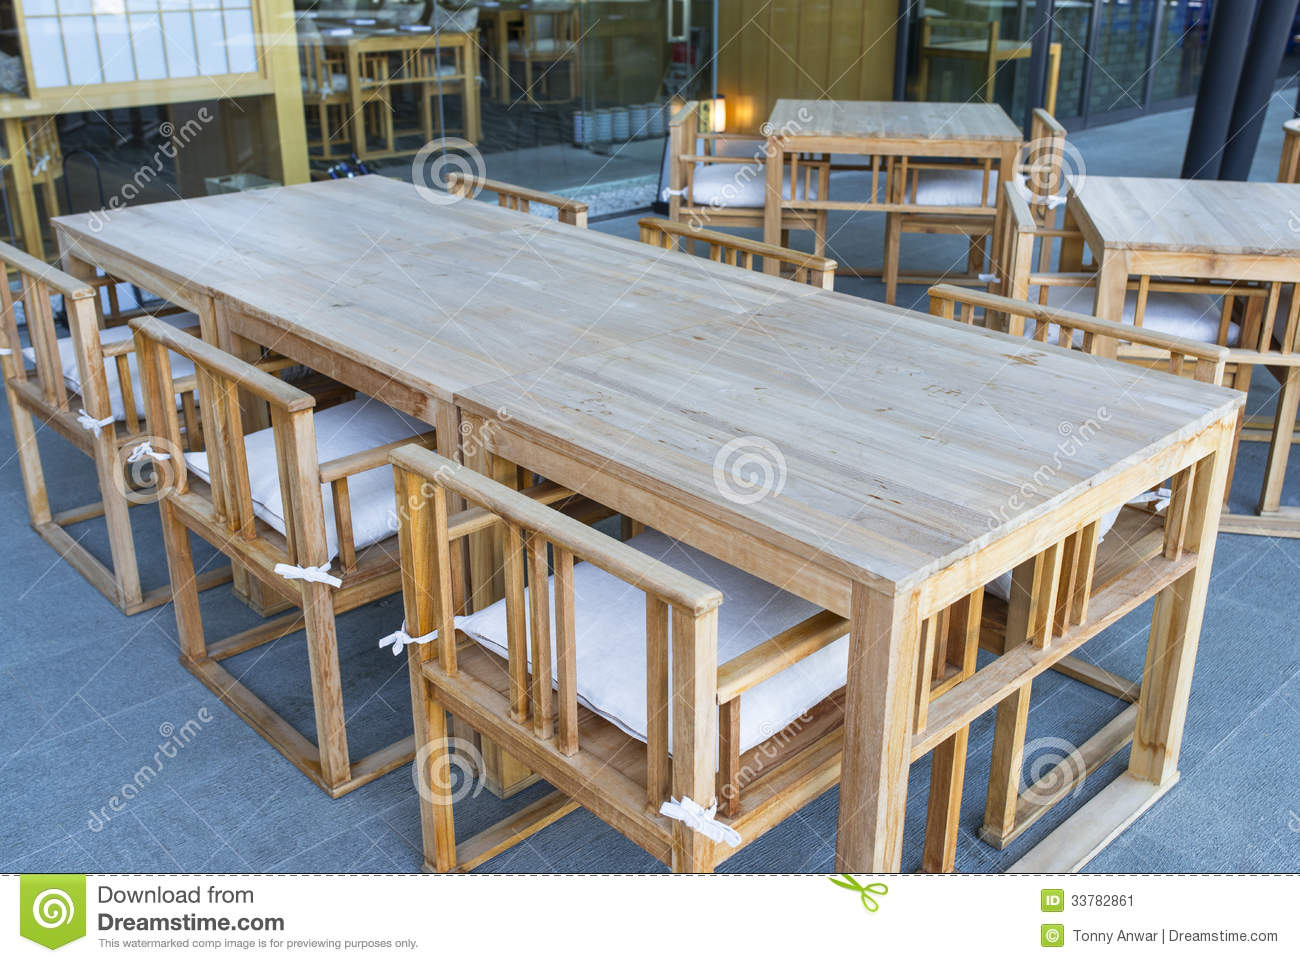 Bistro Furniture Stock Image Image Of Clean Bistro - Restaurant bistro table and chairs